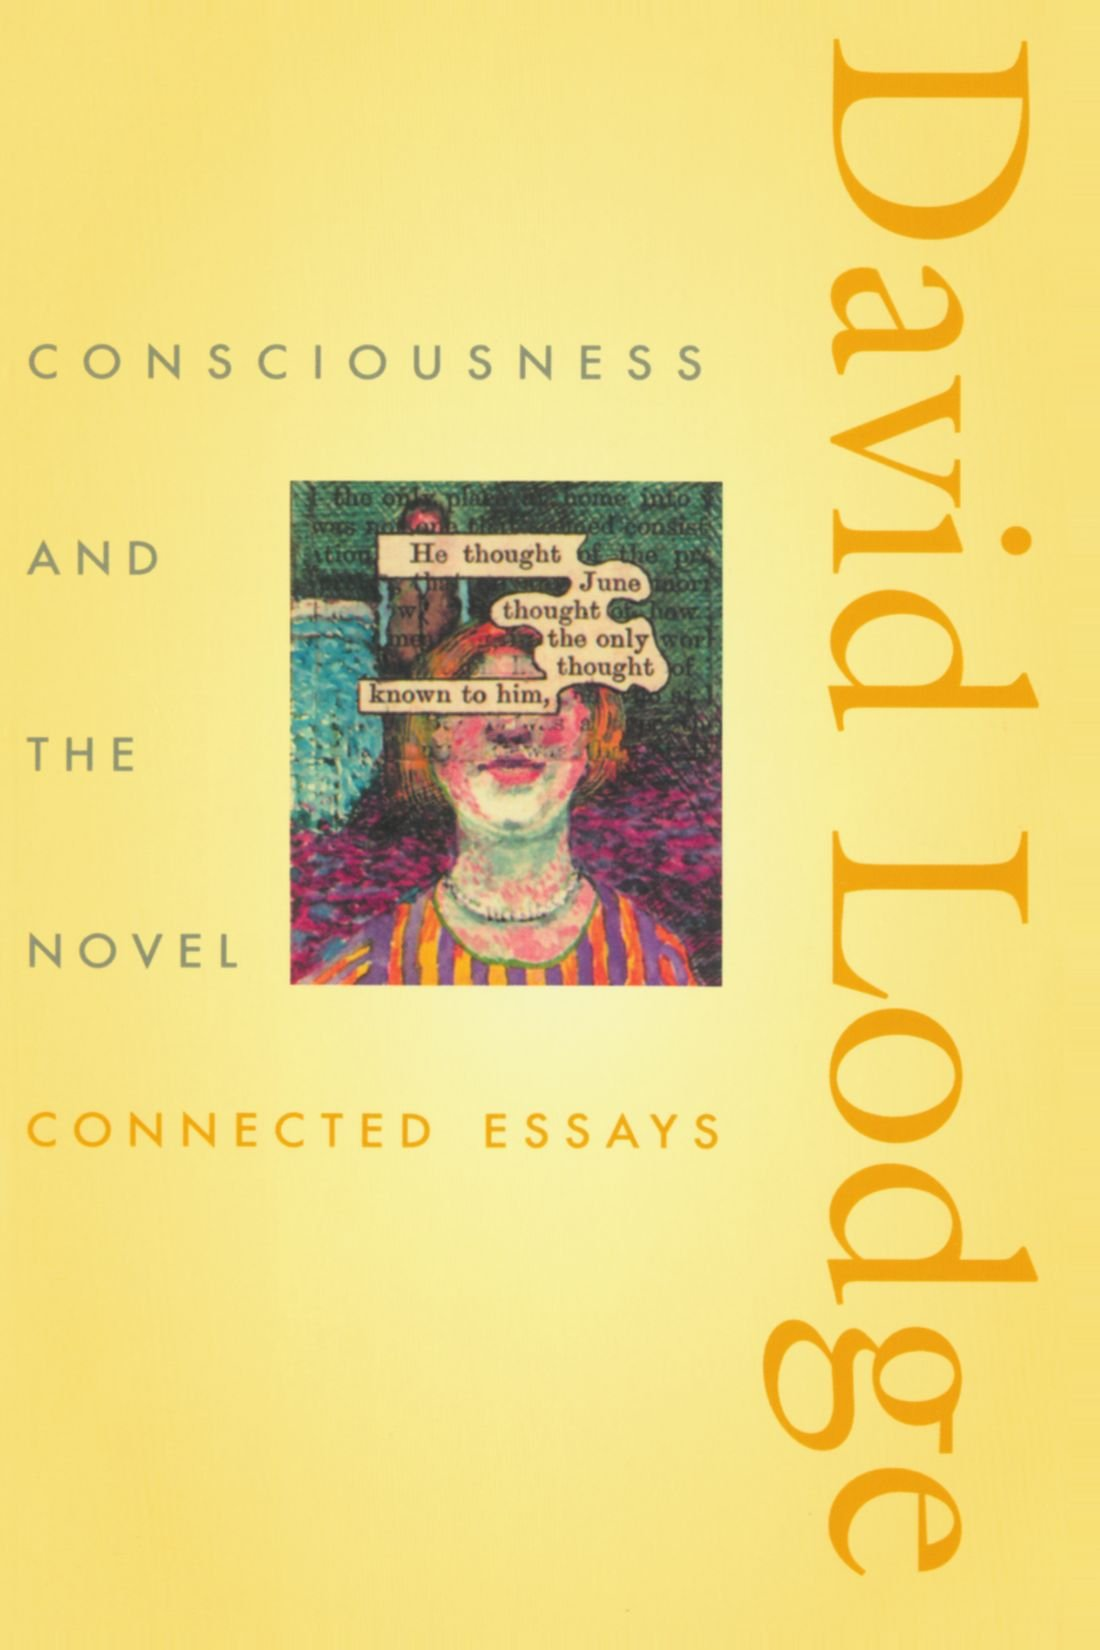 consciousness and the novel connected essays the richard ellmann  consciousness and the novel connected essays the richard ellmann lectures in modern literature david lodge 9780674013773 com books